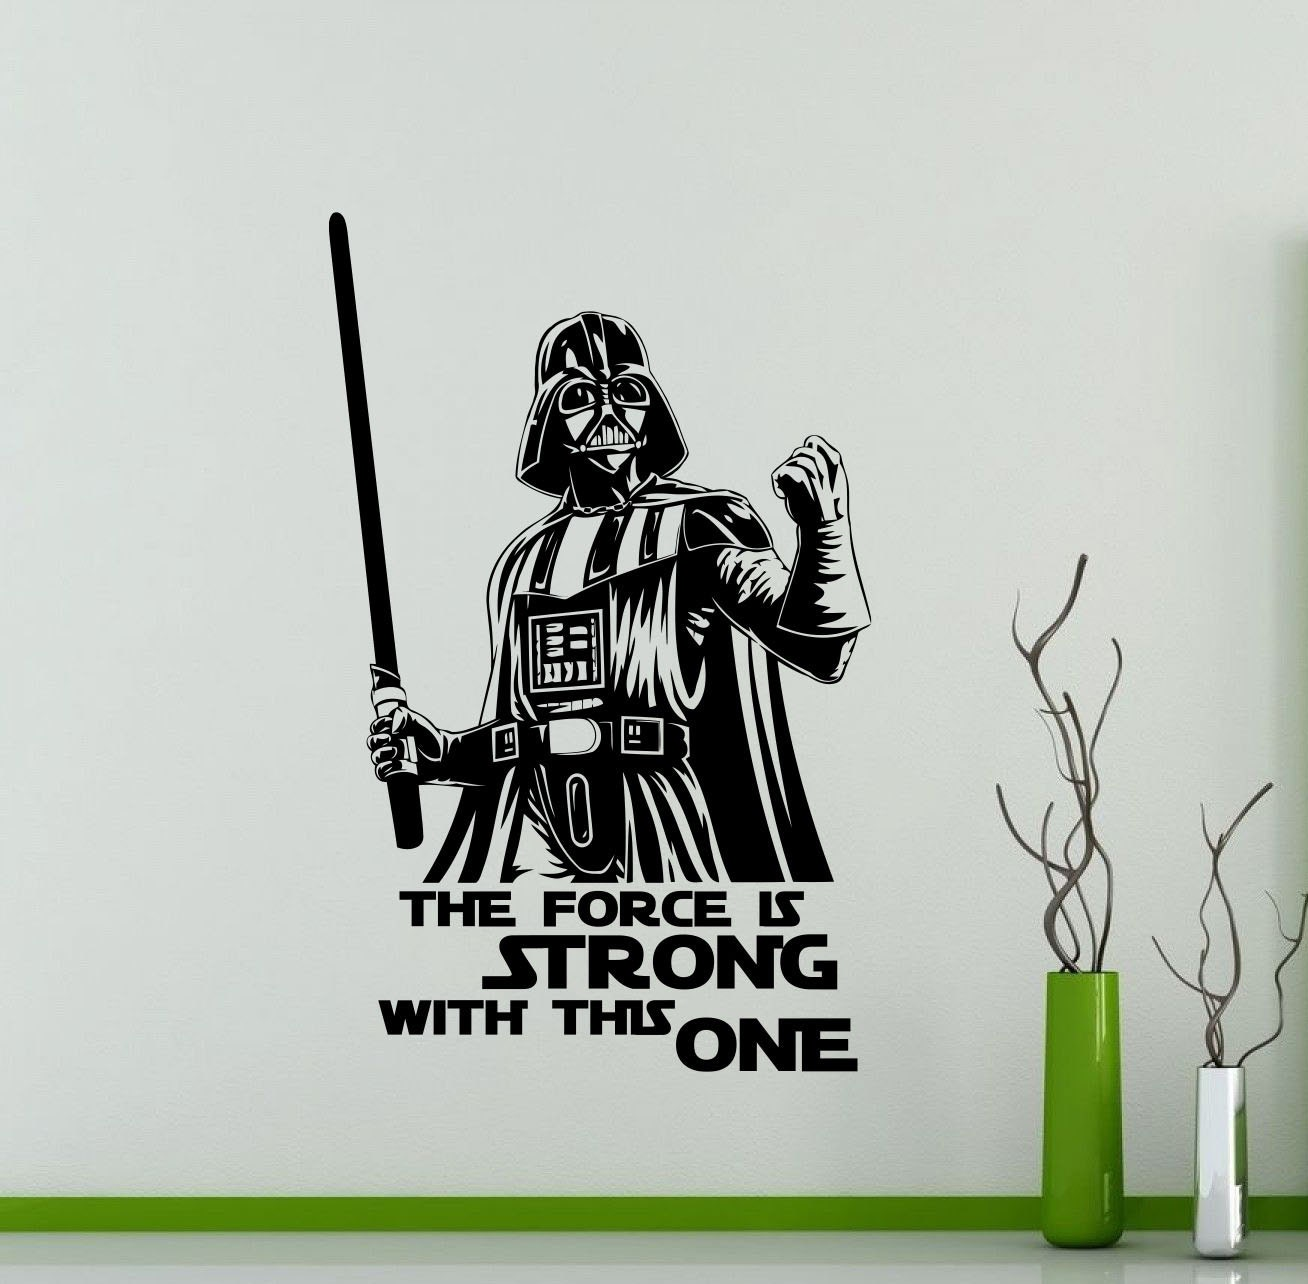 Darth vader wall decal star wars quote vinyl sticker the force zoom amipublicfo Gallery